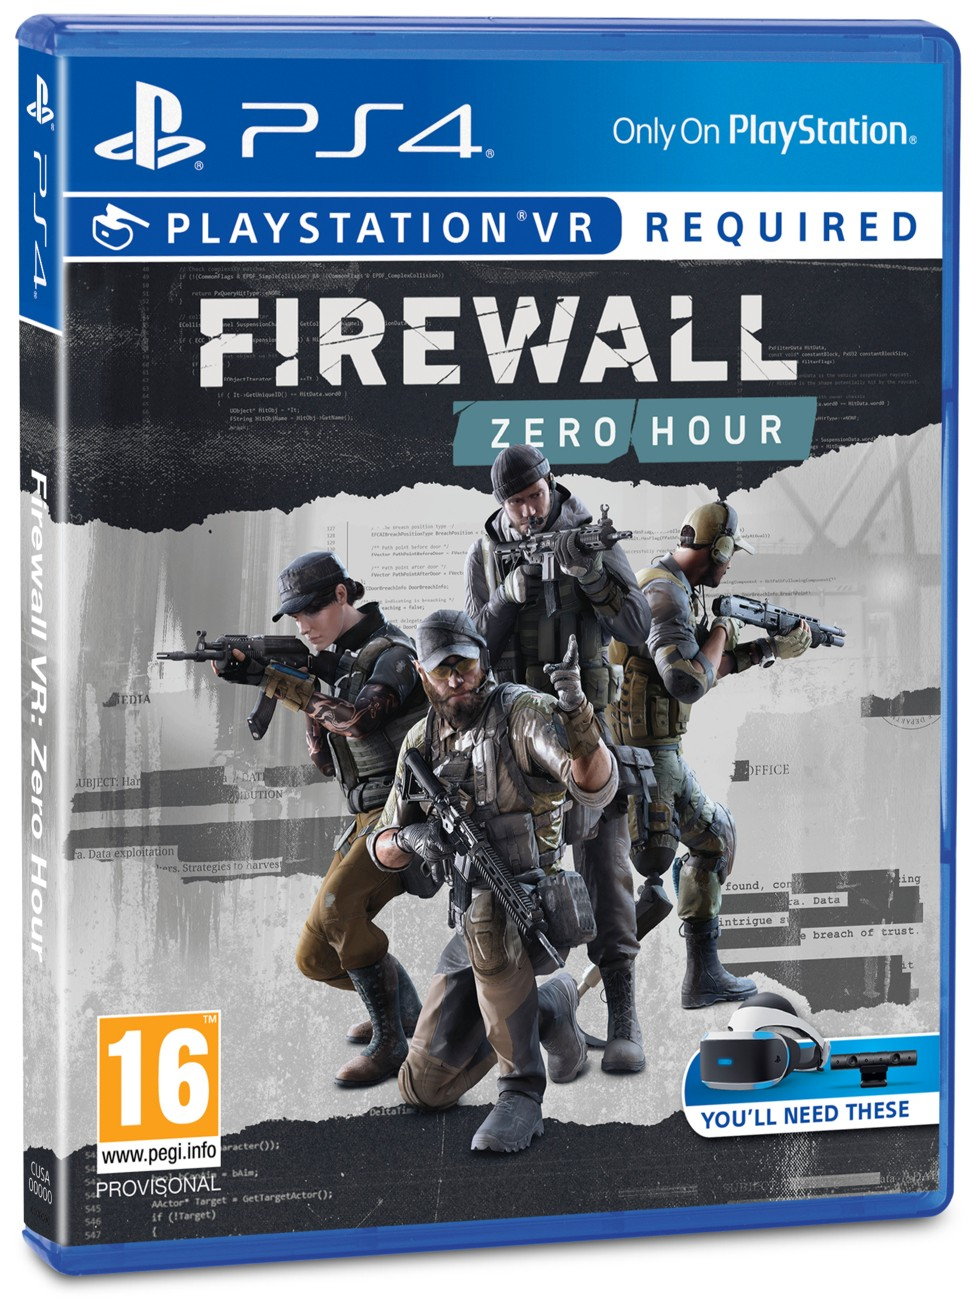 Firewall: Zero Hour - PS4 VR